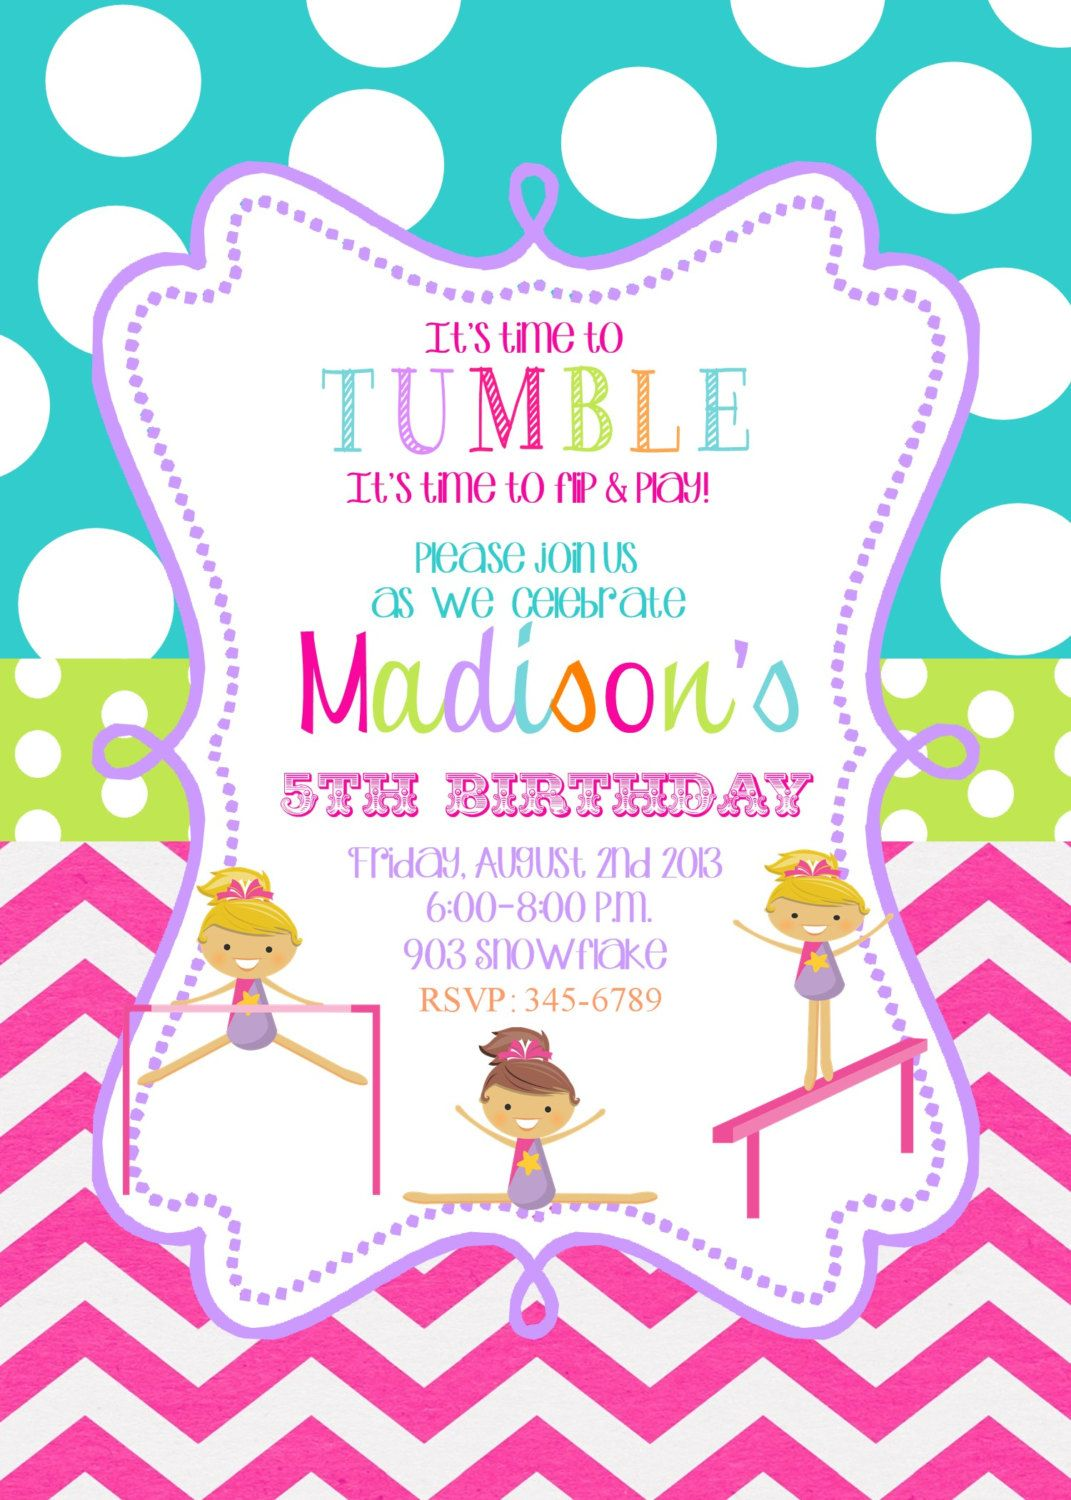 Flip Flop Gymnastics Birthday Party Invitation pink blue green – Gymnastics Party Invitation